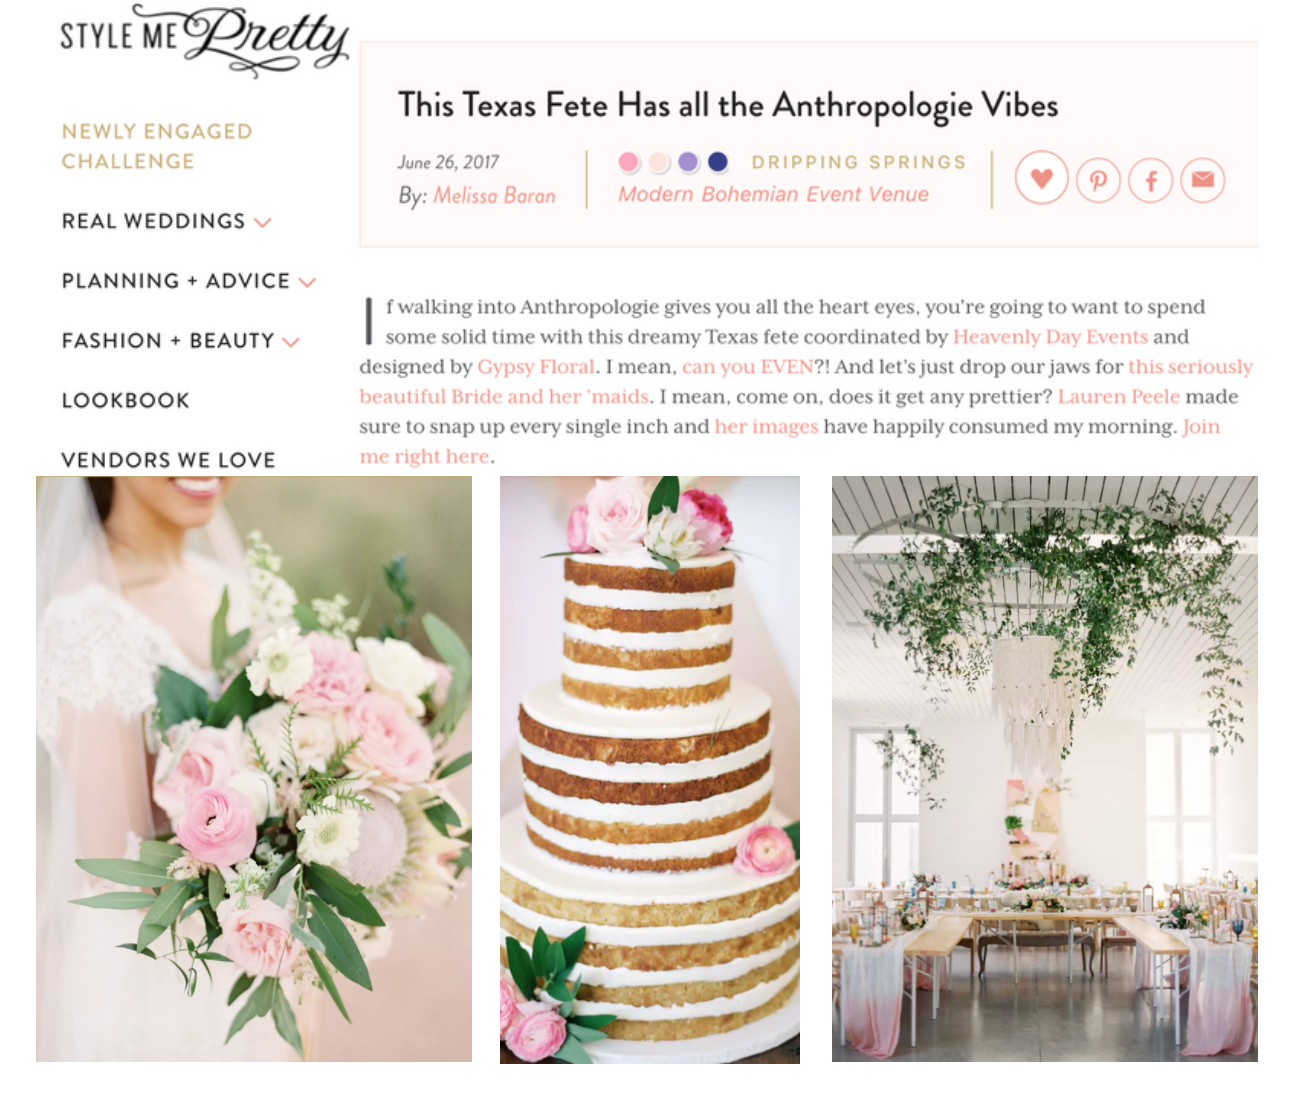 Style Me Pretty | This Texas Fete Has all the Anthropologie Vibes | Gypsy Floral and Events